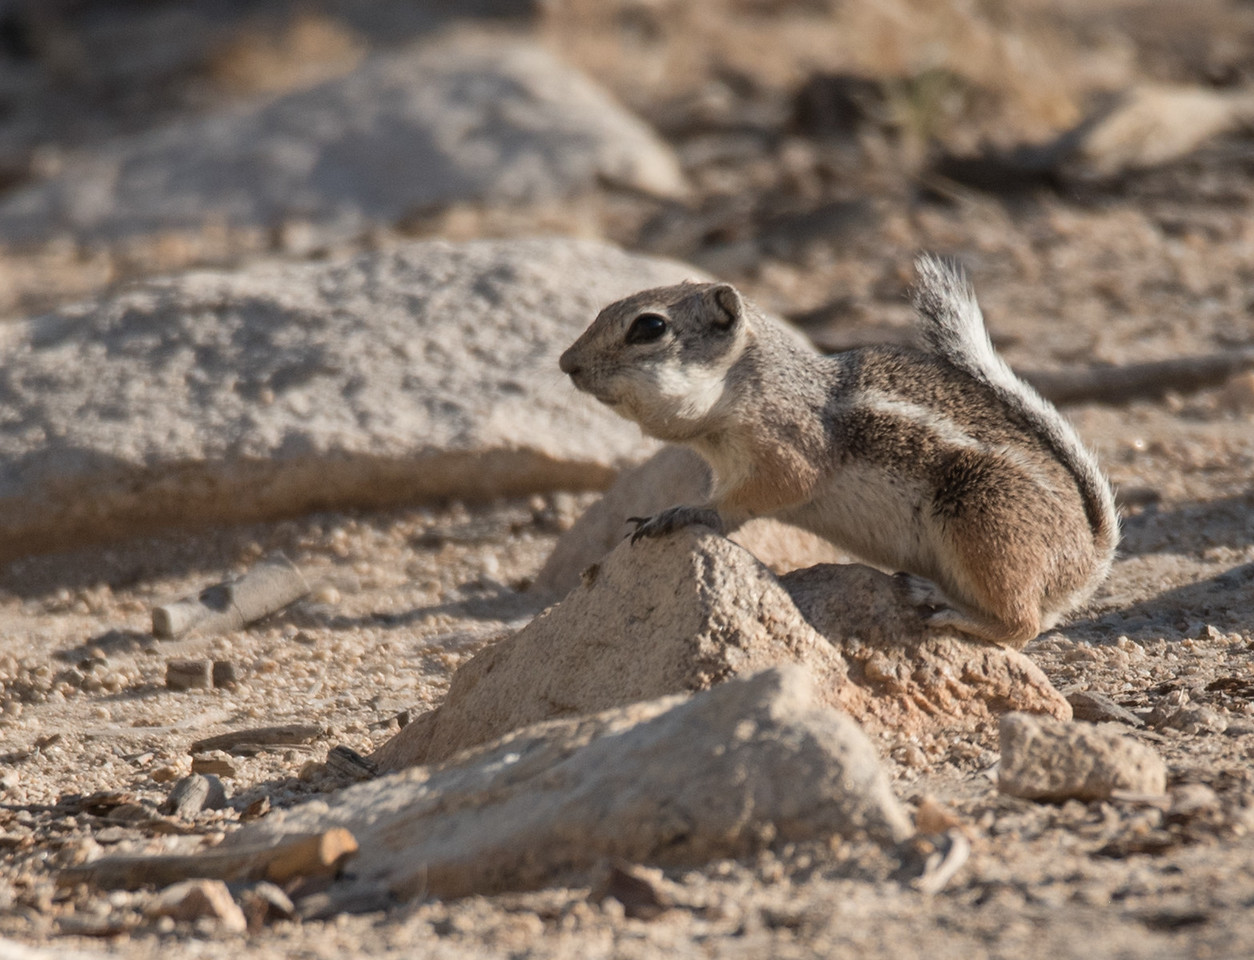 White-tailed Antelope Squirrel with stuffed cheek pouches